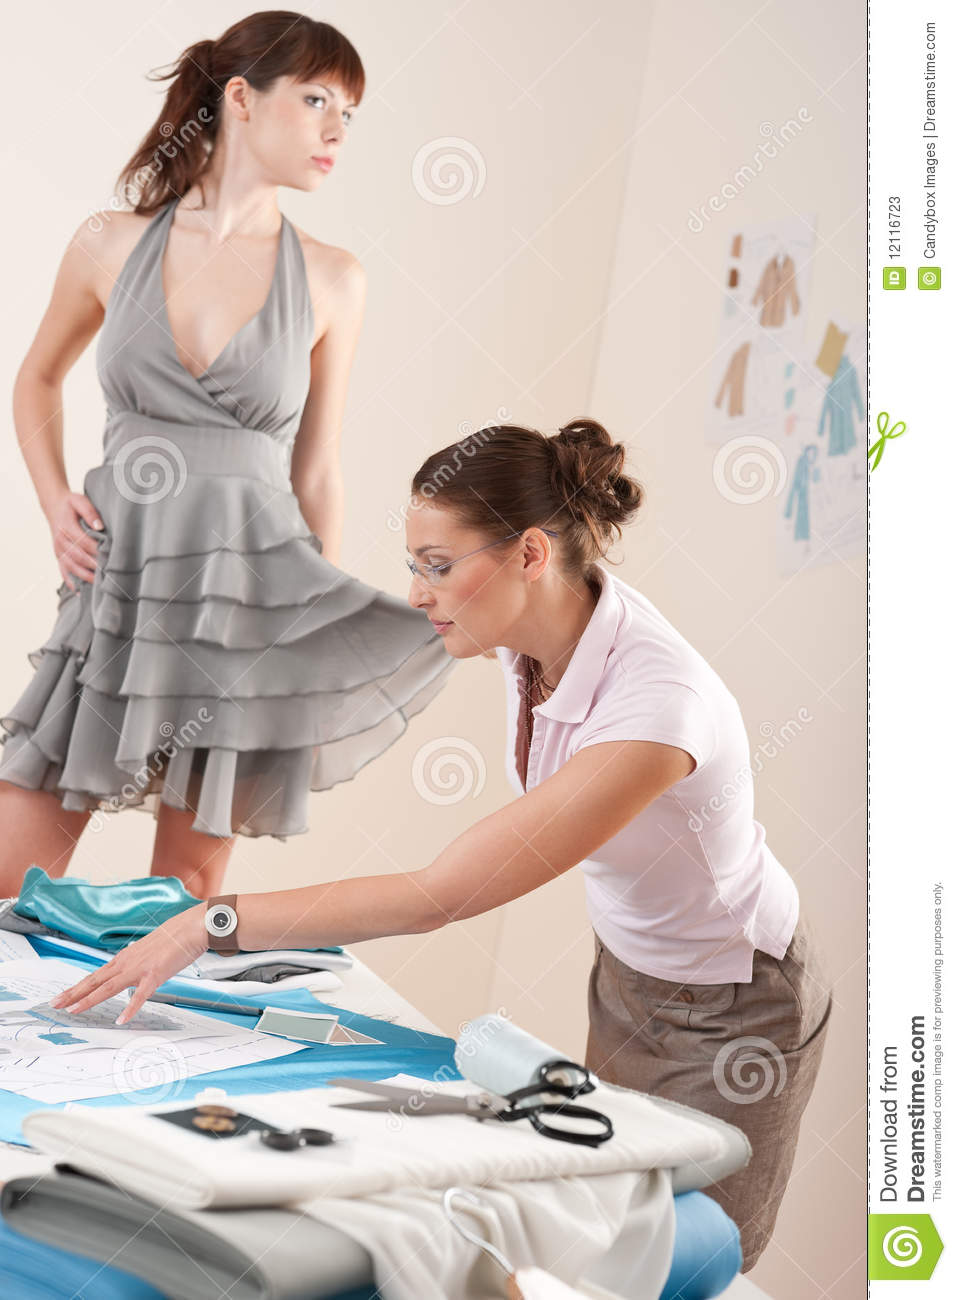 Female Fashion Designer Trying Dress On Model Stock Image